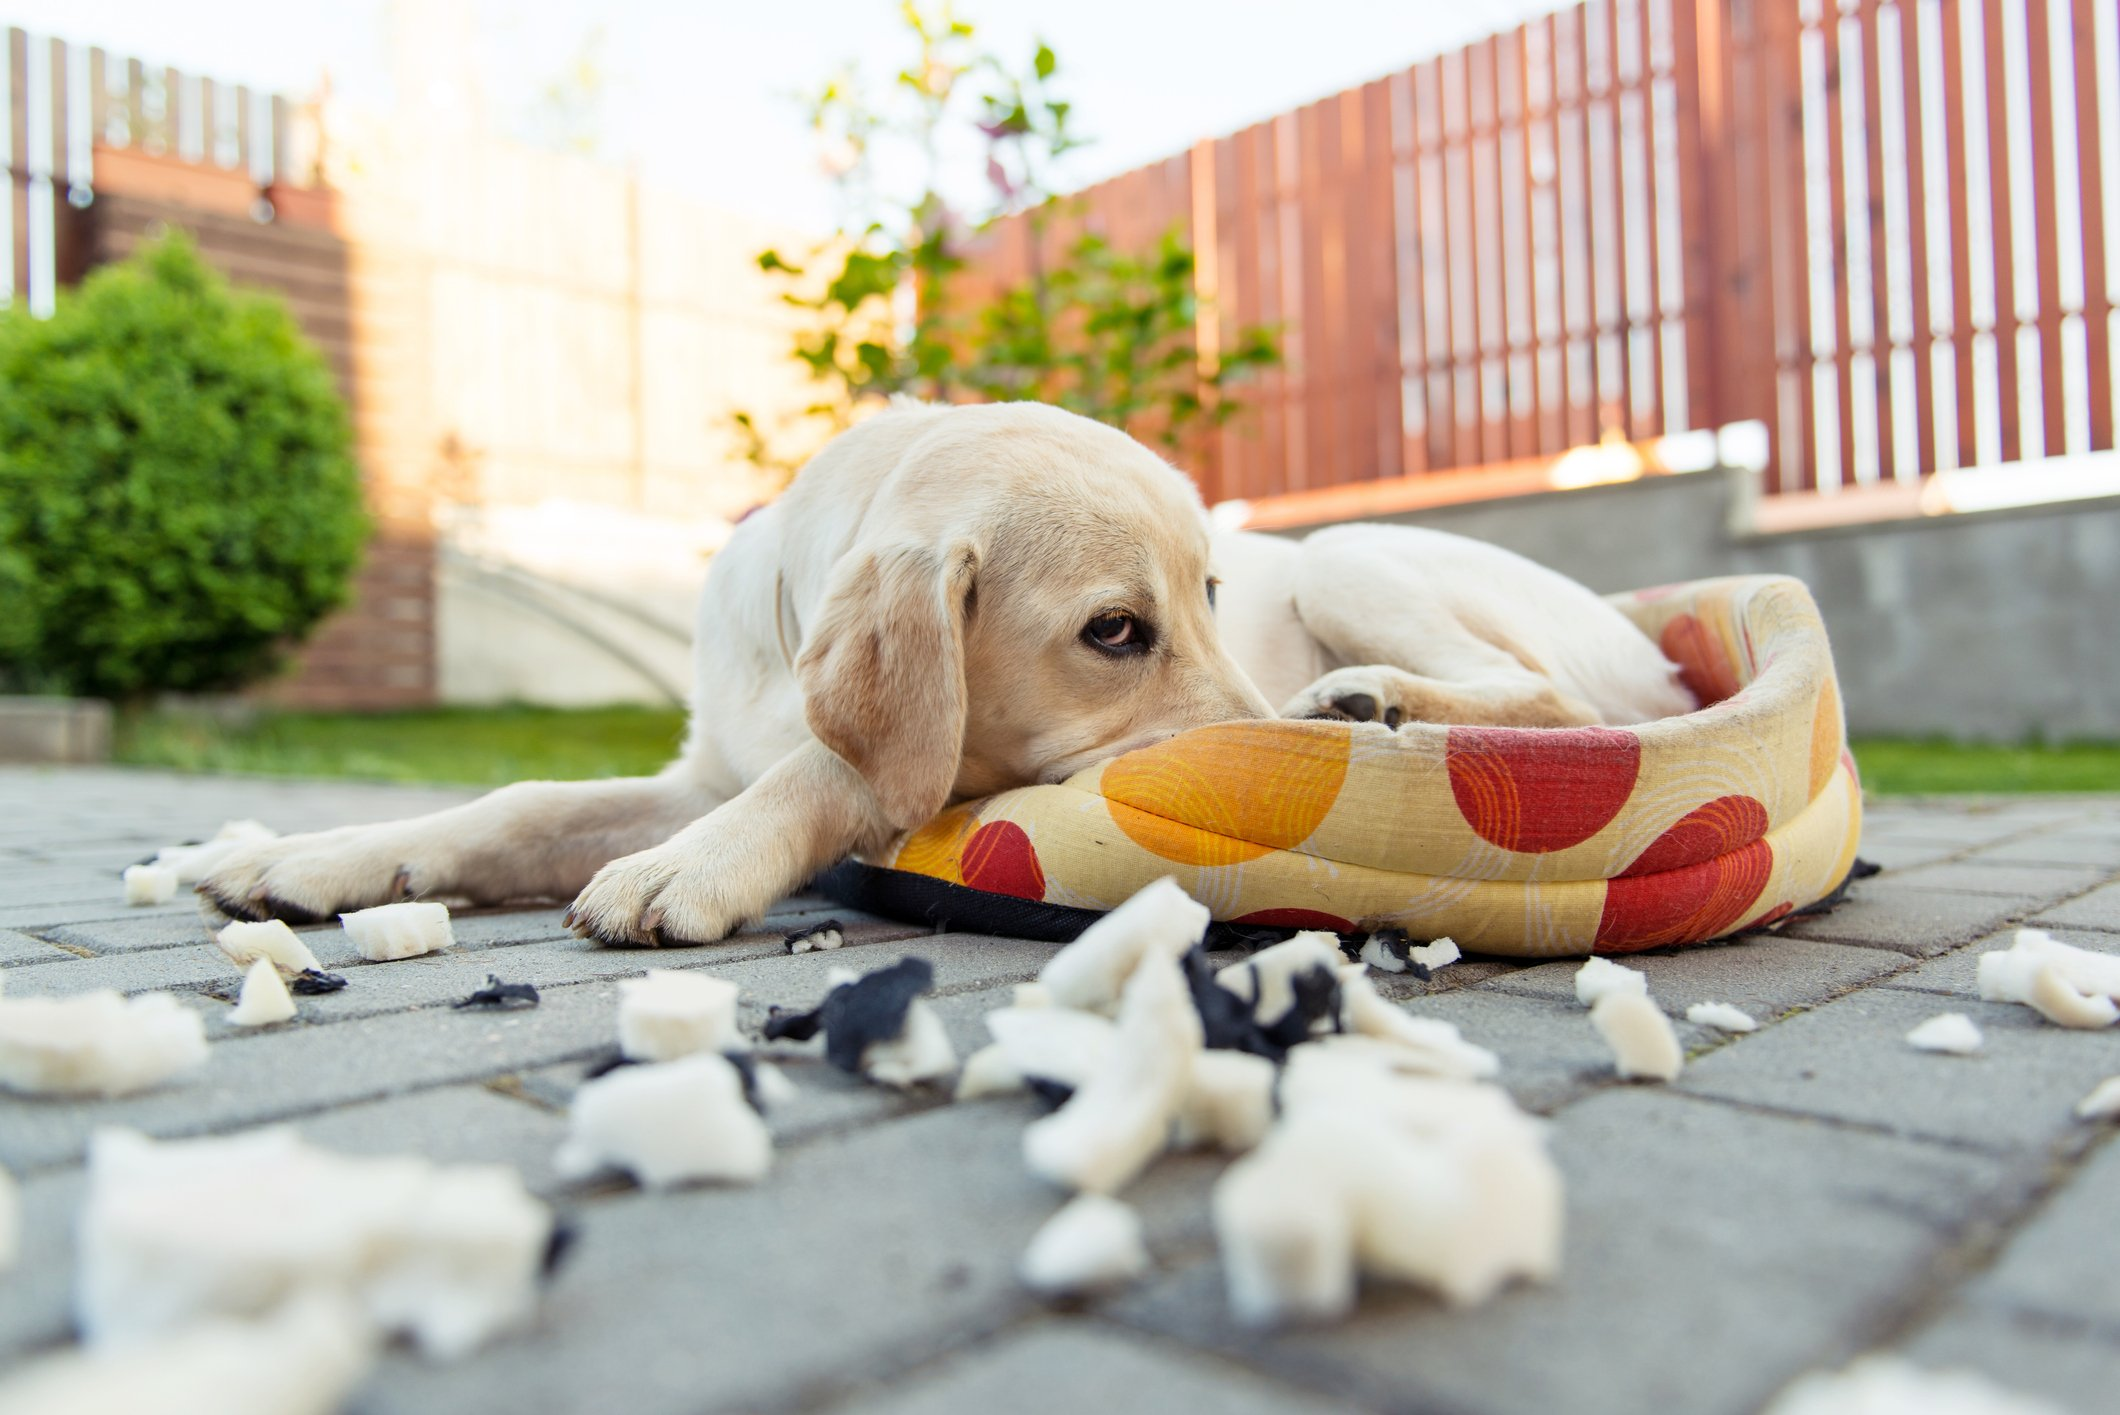 Image of a yellow labrador retriever junior dog trying  to hide after he teared apart his pillow in backyard.